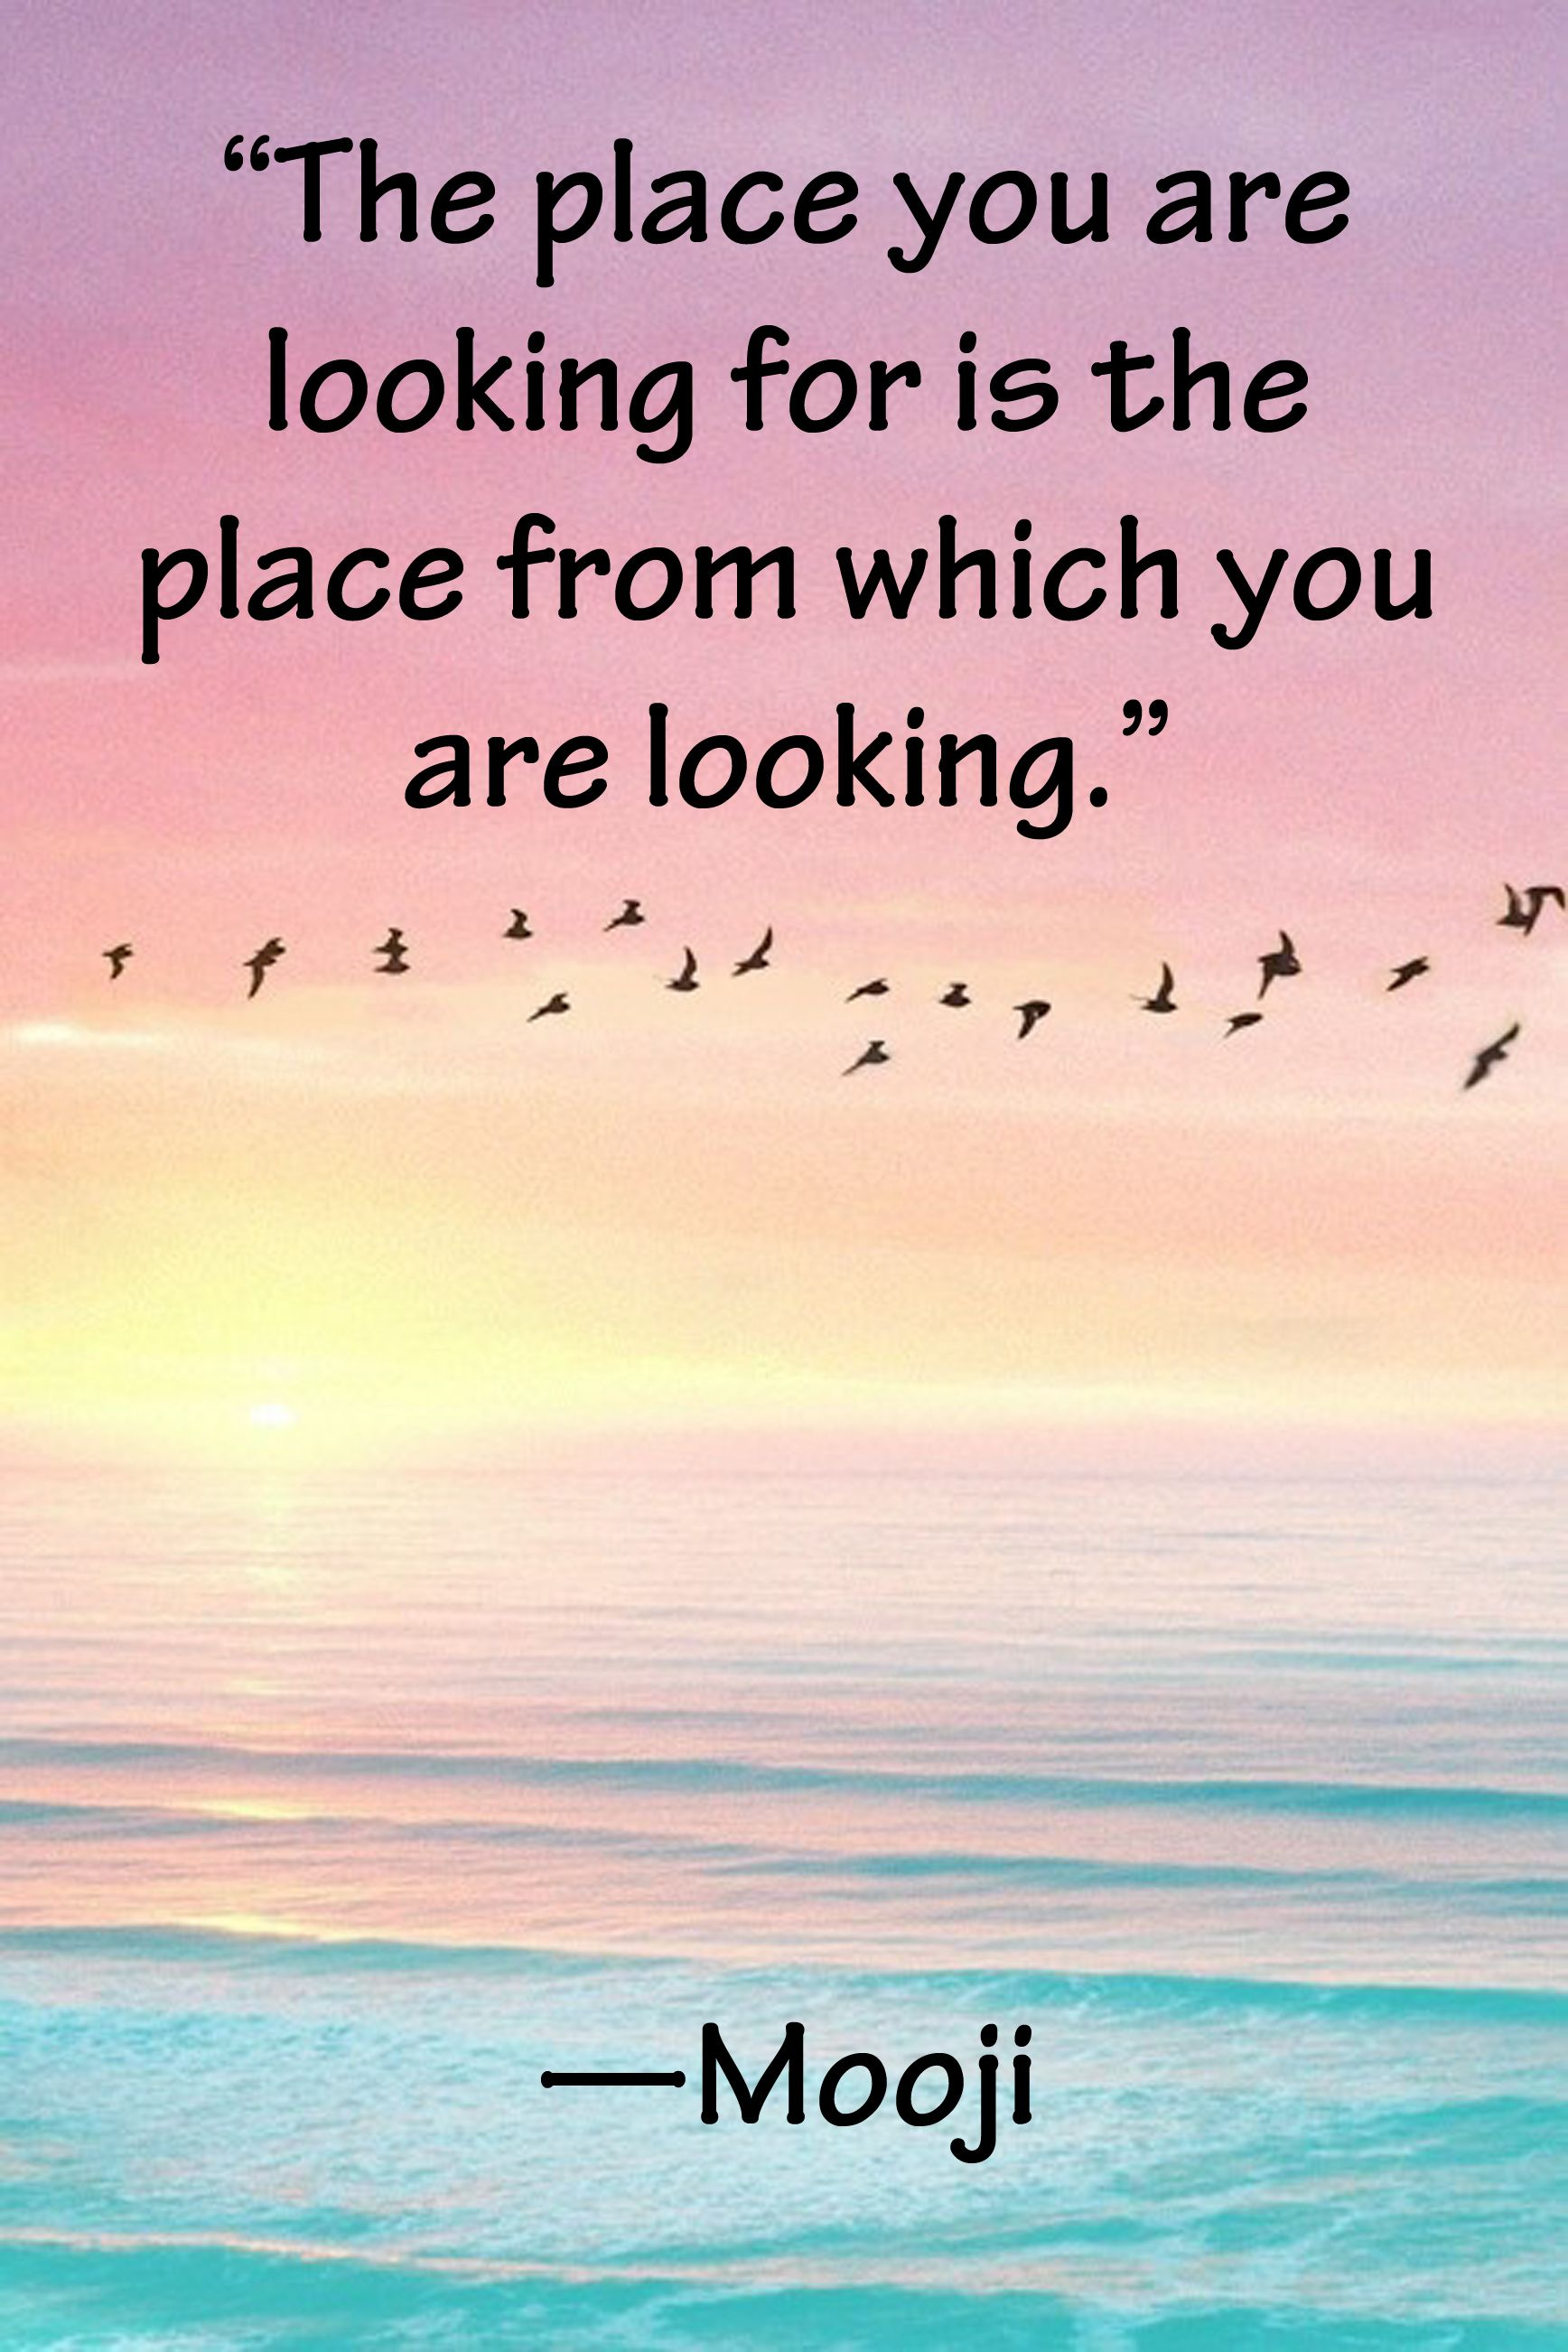 Mooji Quotes On Love Quotesgram. Funny Quotes With Animals. God Quotes Sayings Life. Marriage Quotes Verses. Disney Quotes Eeyore. Love You Quotes To Her. Confidence Quotes For Sports. Deep Quotes On Smile. Love Quotes For Him In Zulu